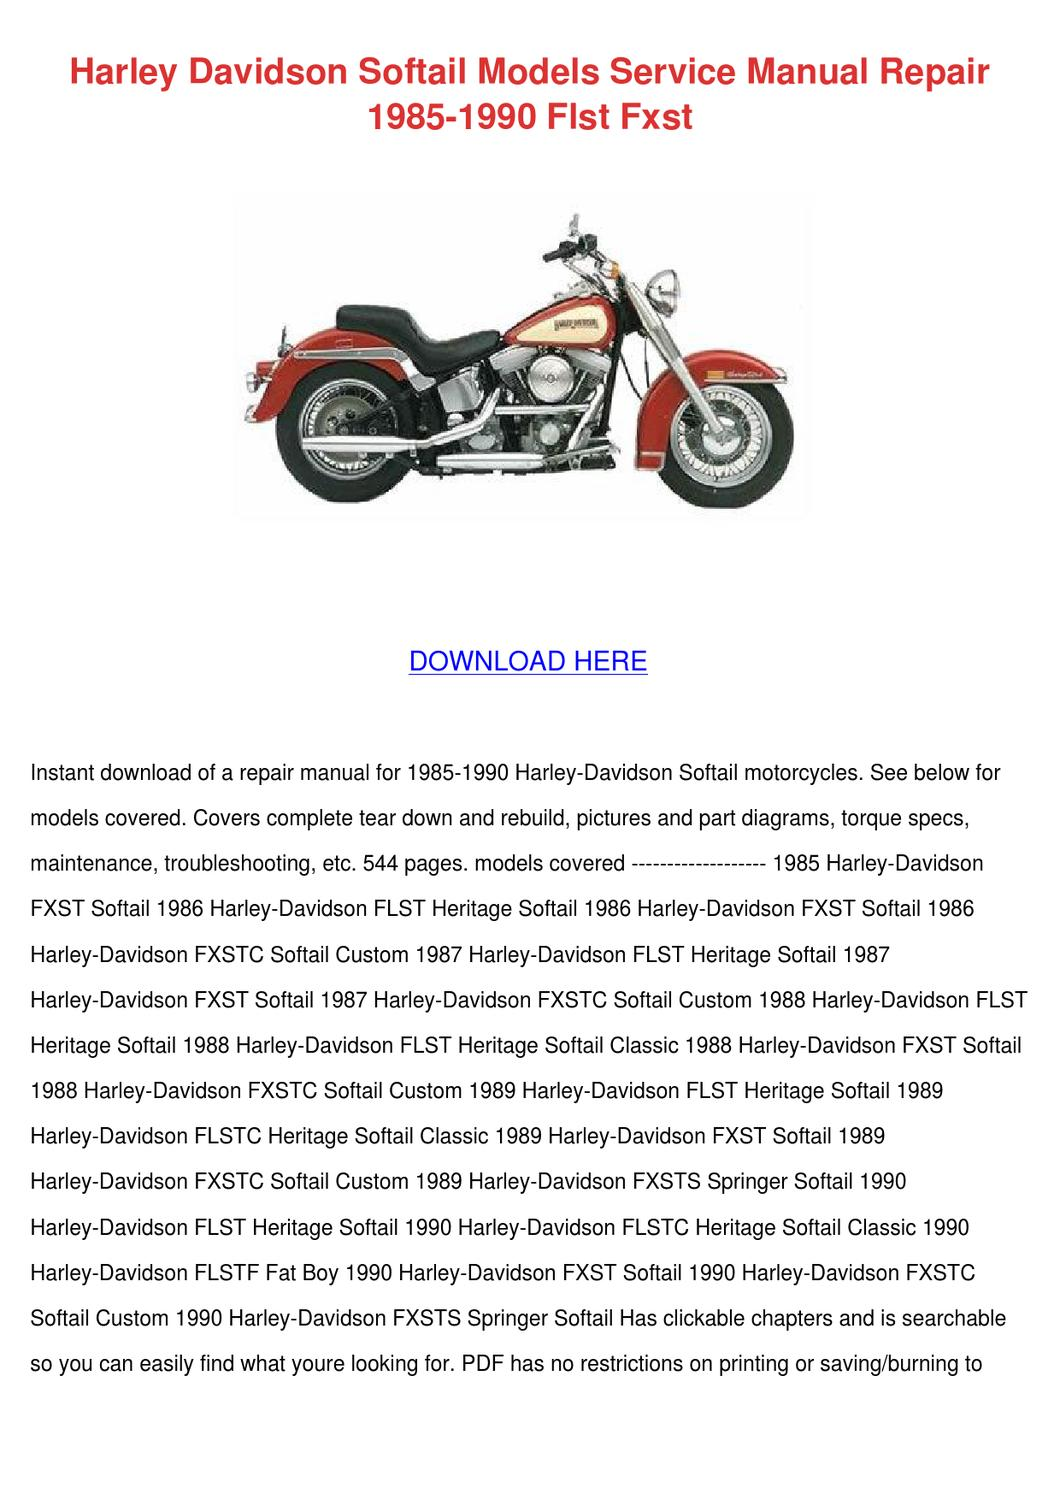 hight resolution of harley davidson softail models service manual